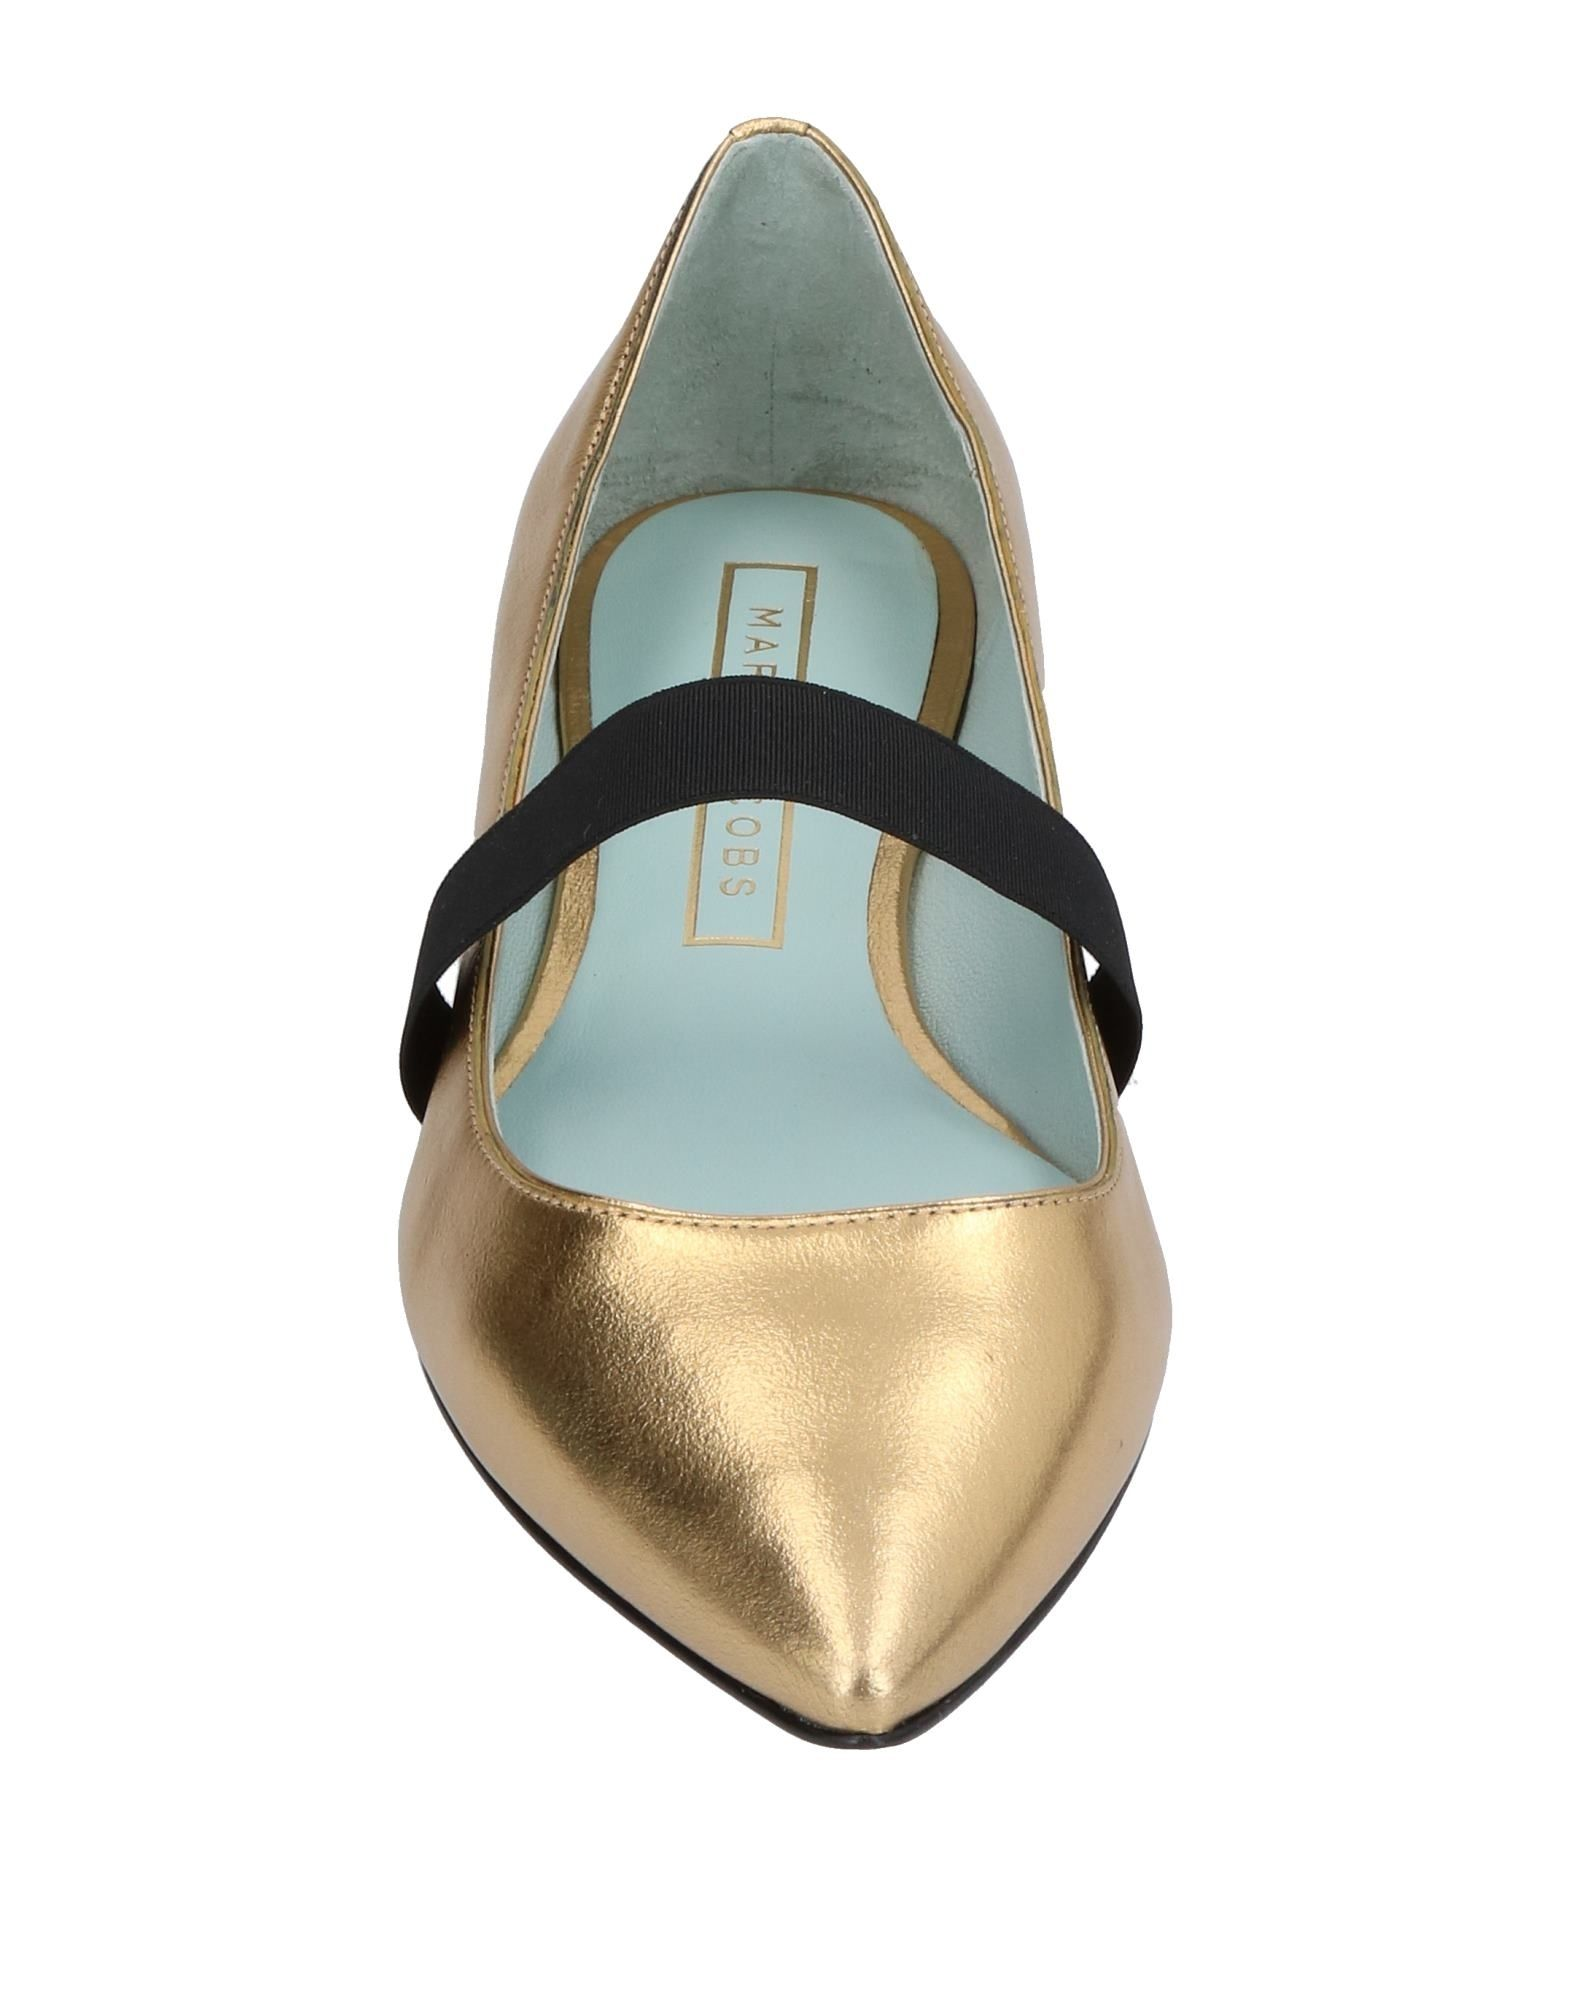 Stilvolle Jacobs billige Schuhe Marc Jacobs Stilvolle Ballerinas Damen  11381133AQ 85c676